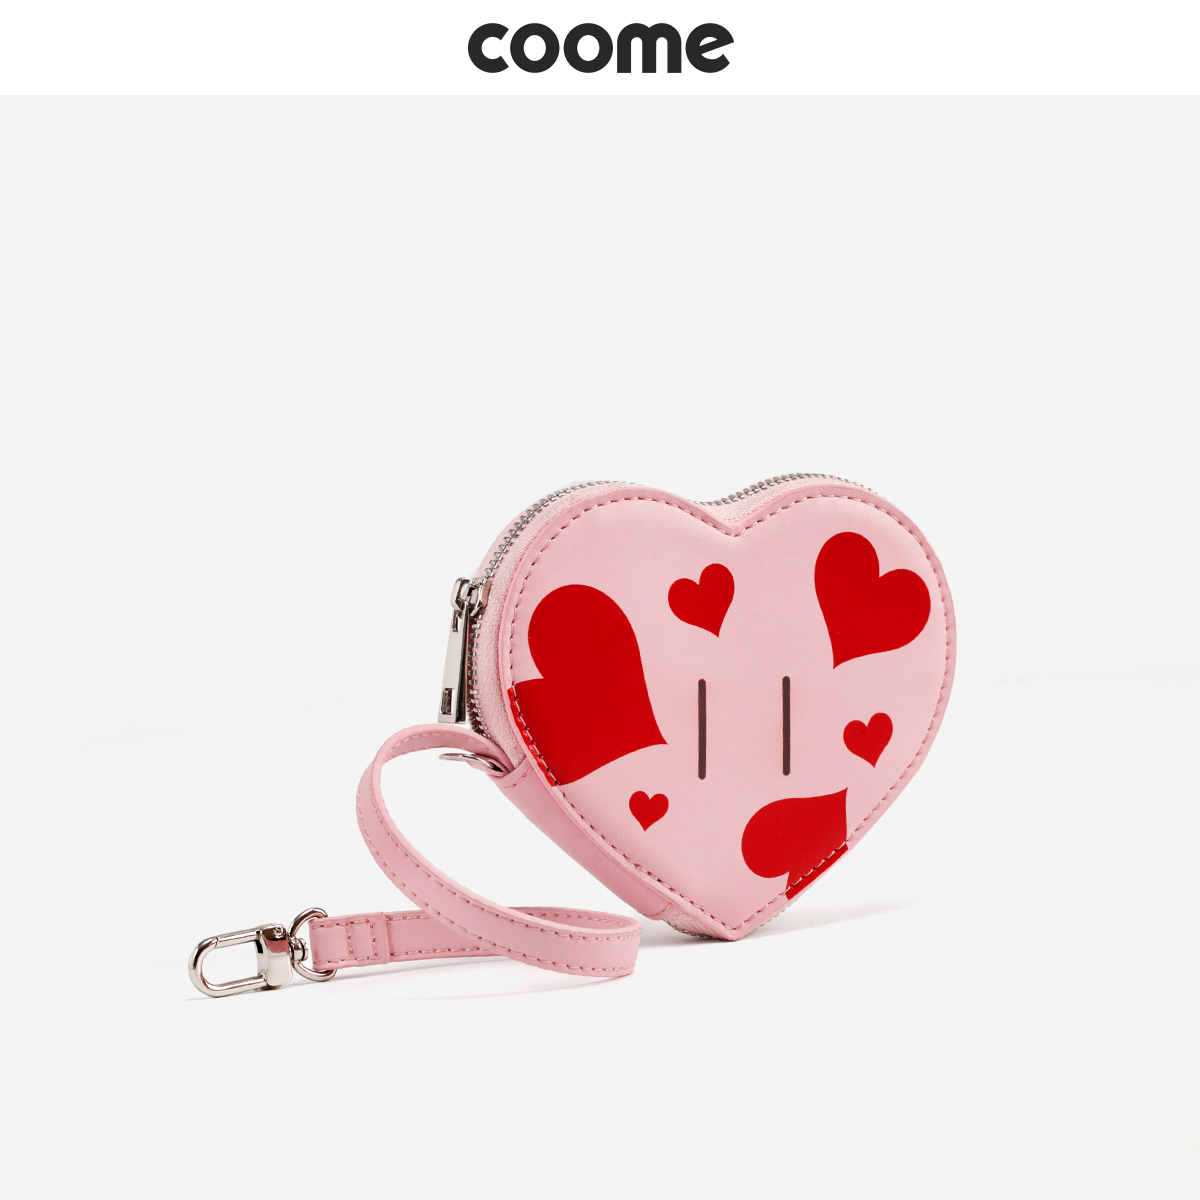 Coome Change Wallet Girl 2019 New Mini Wallet Personality Heart-shaped Handbag